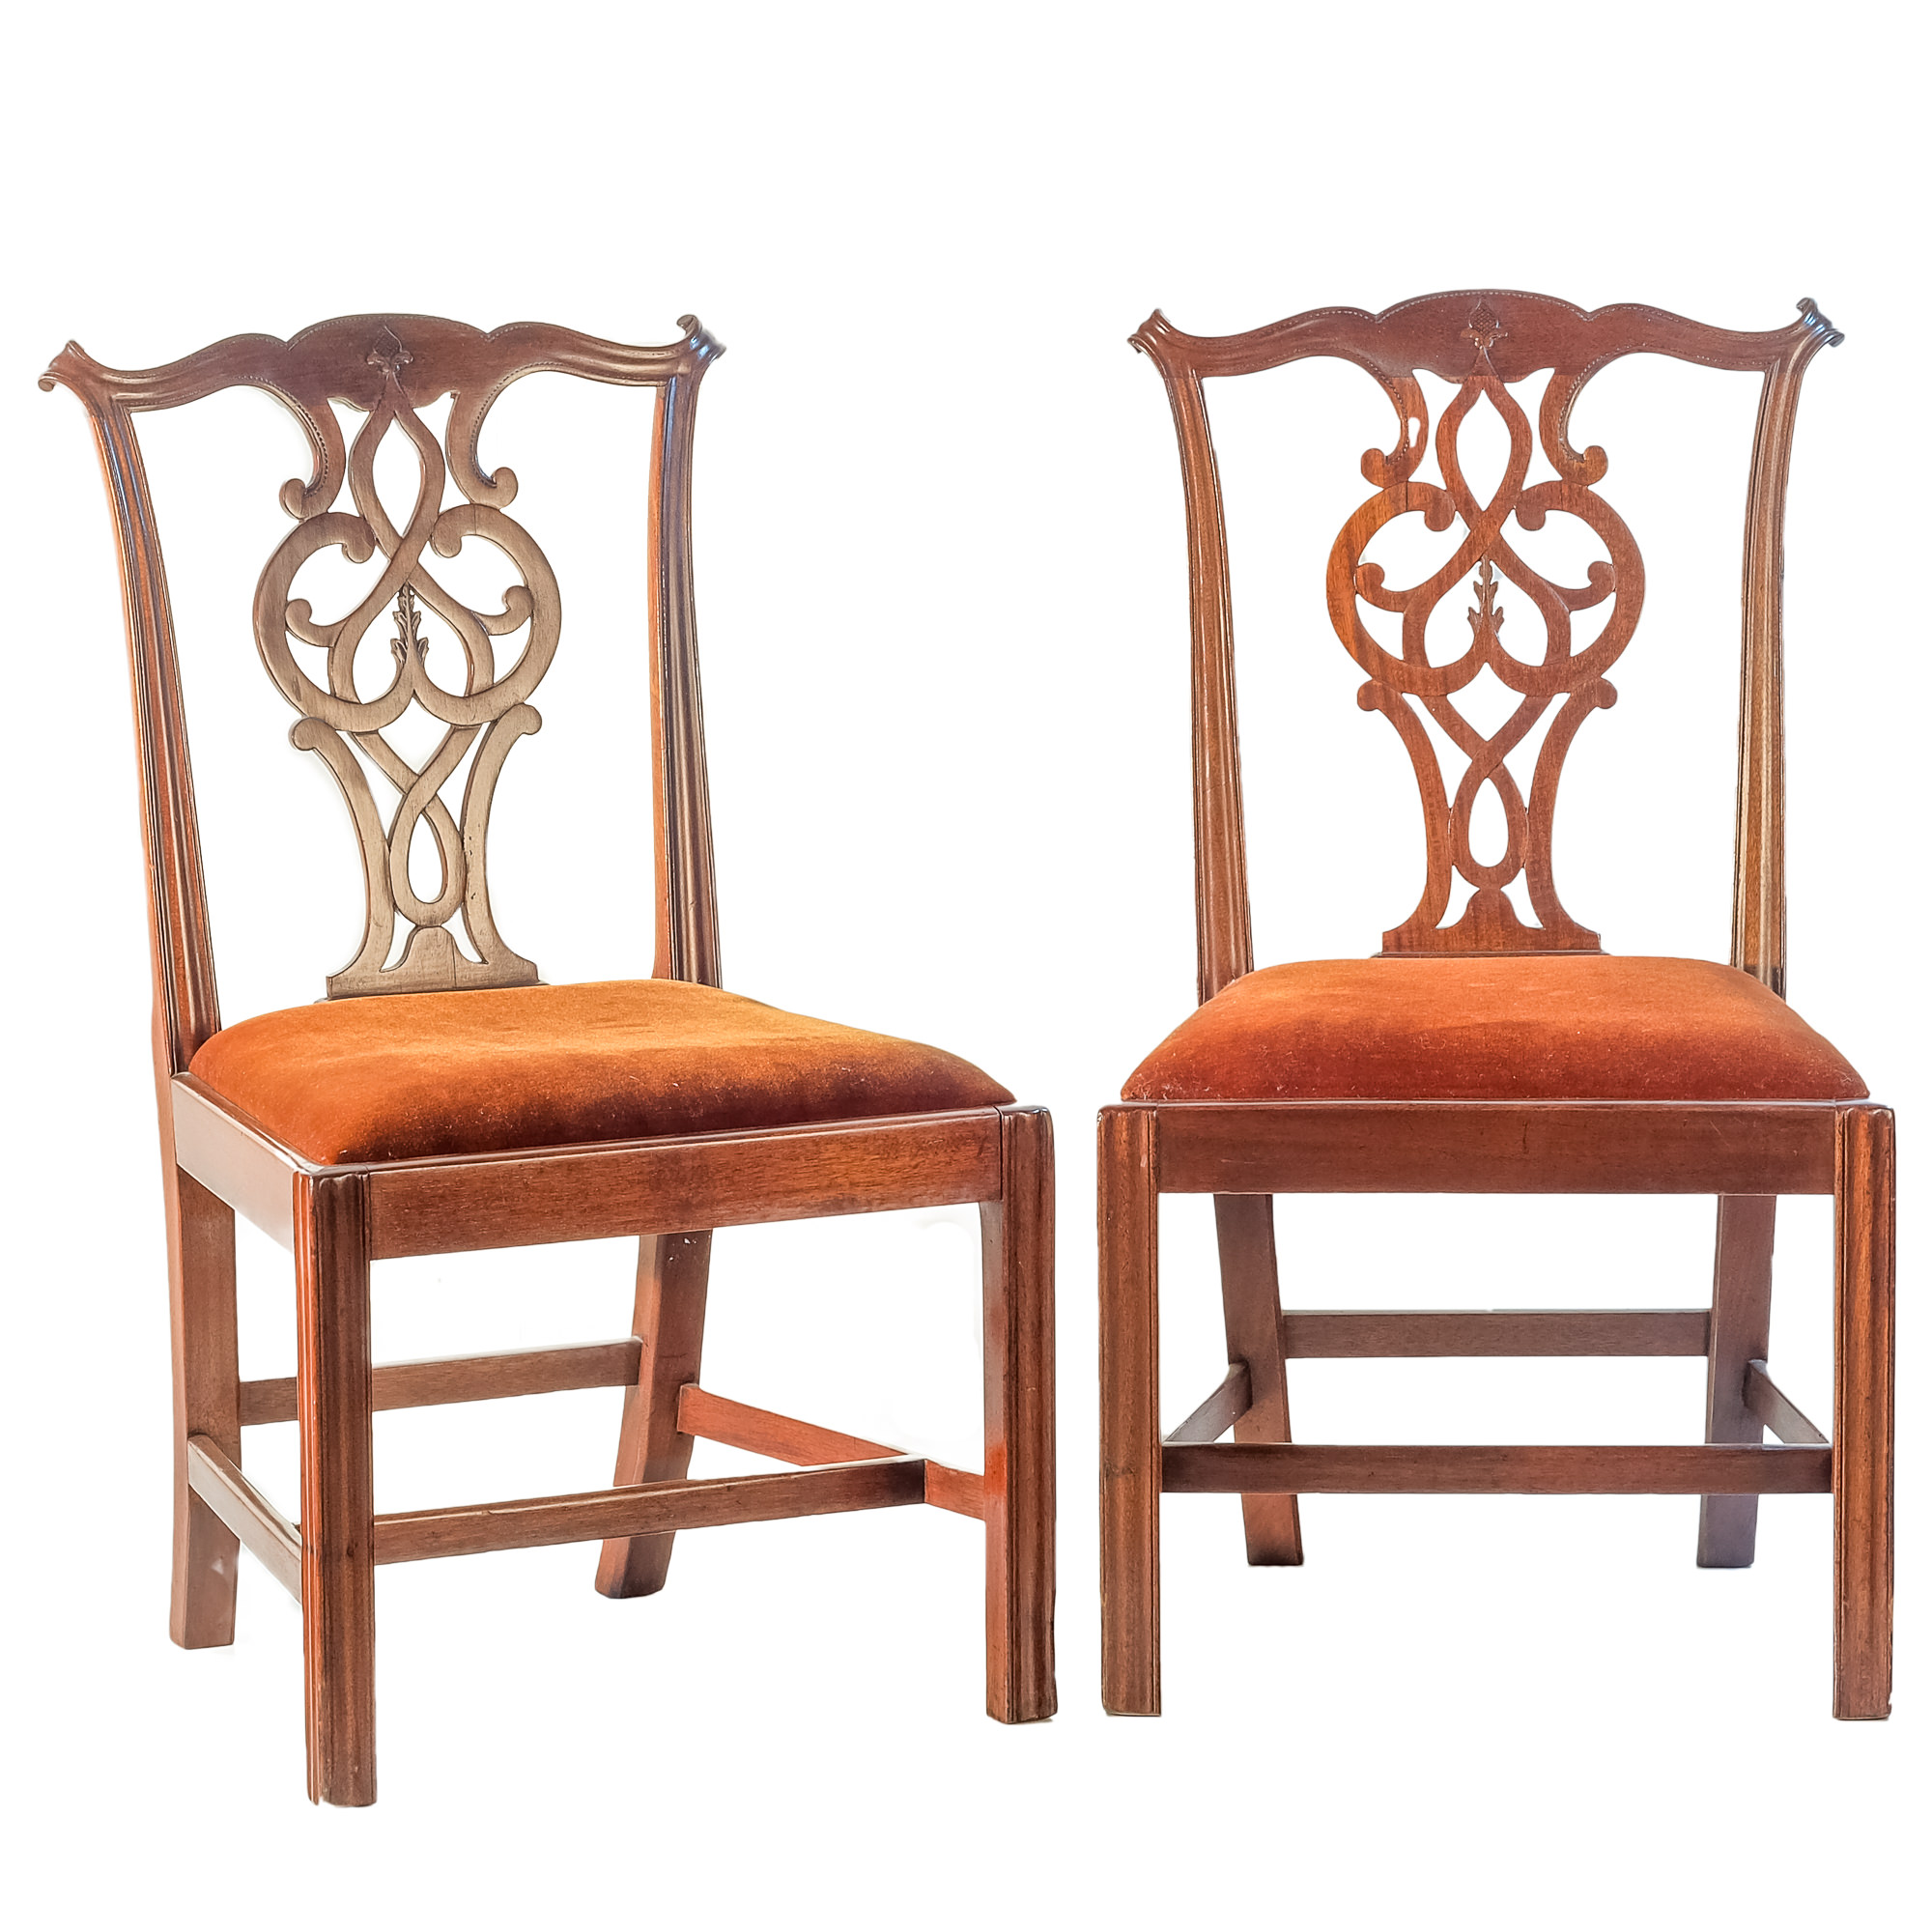 'Pair Mahogany Chippendale Style Chairs with Red Brown Velvet Seats 19th Century'